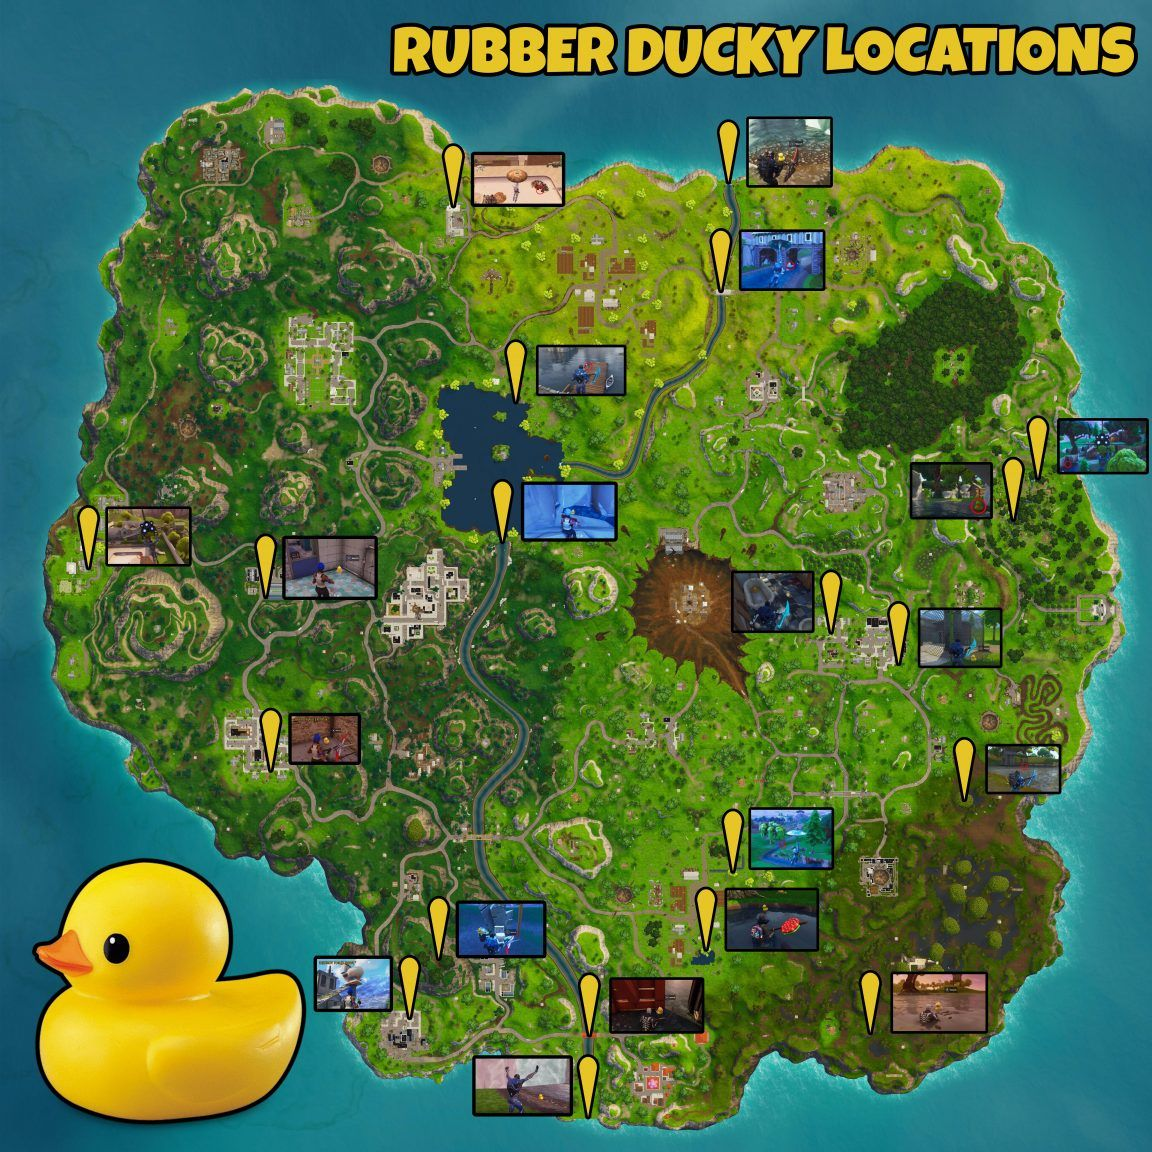 Fortnite Search Rubber Duckies How To Find 10 Quacking Rubber Ducks In Fortnite Fortnite Indoor Soccer Field Battle Star